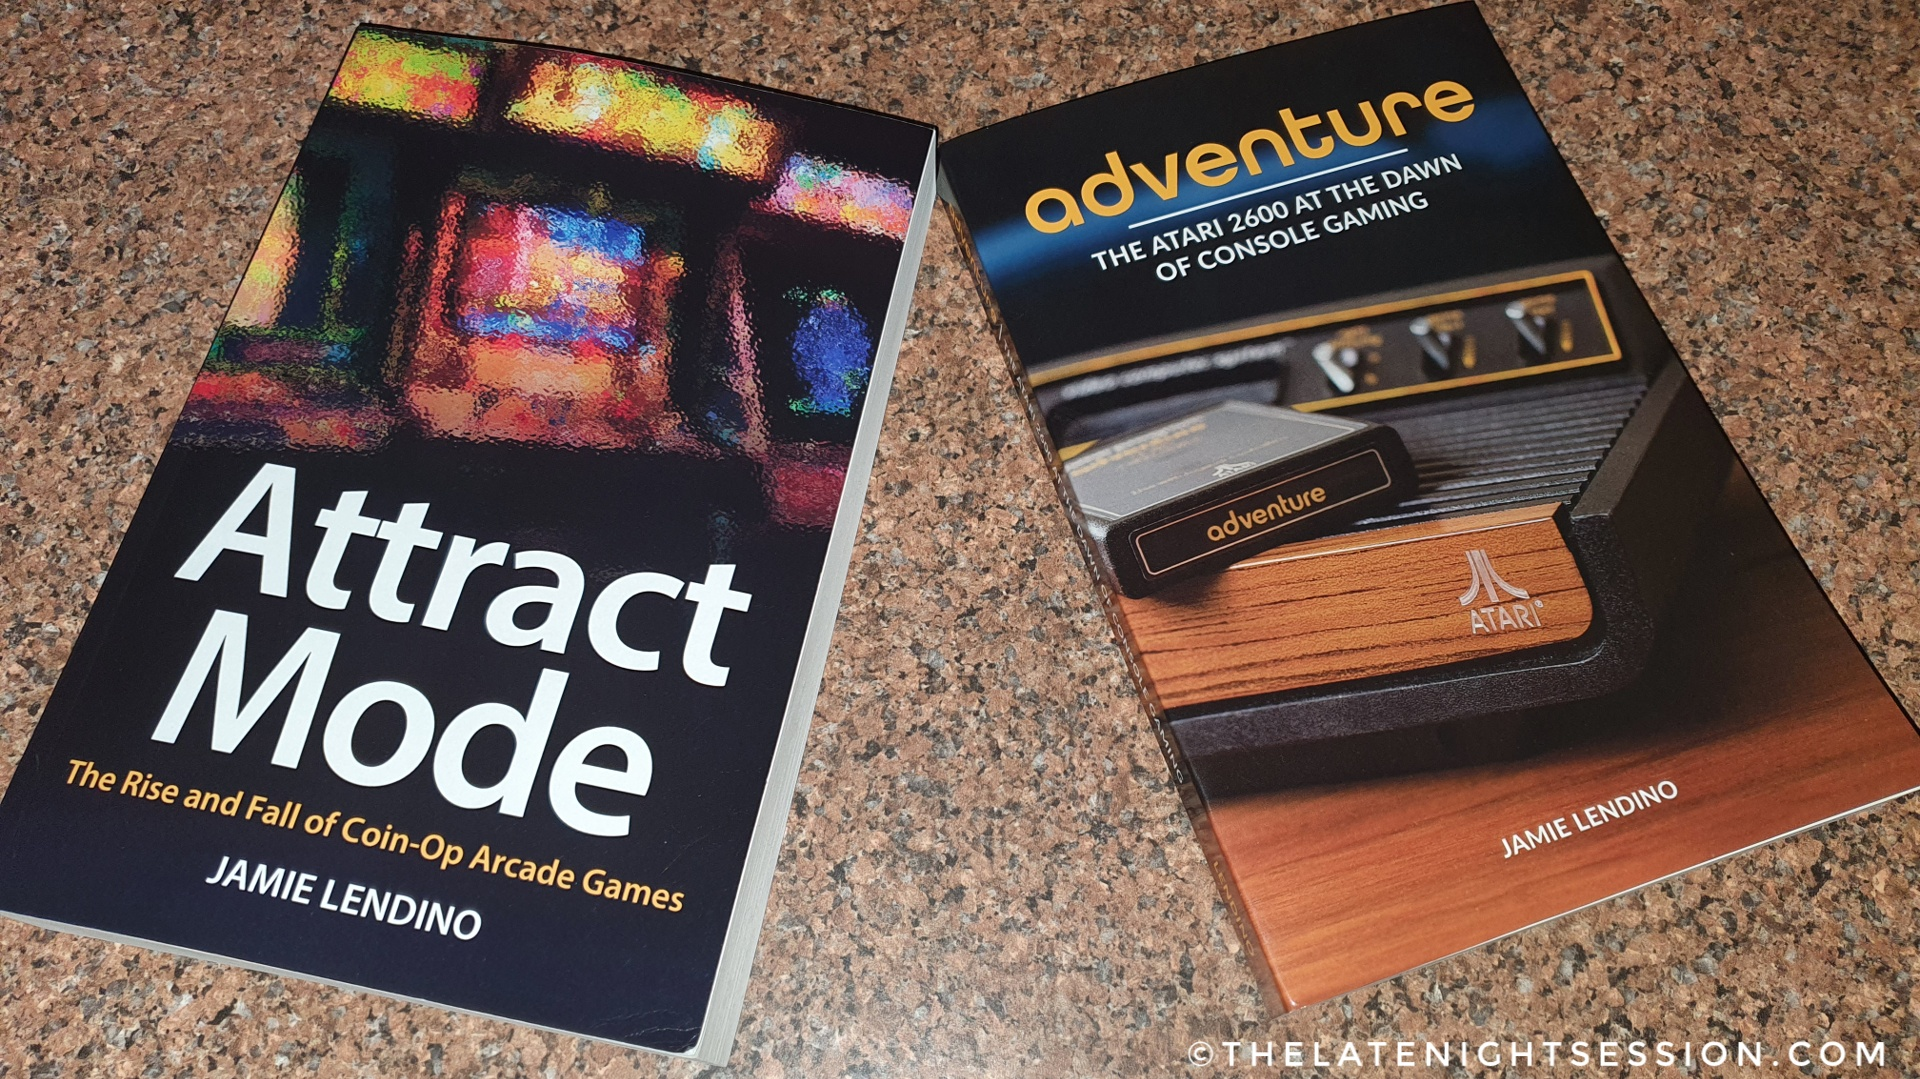 Homebound: Retro Gaming Books Part 3